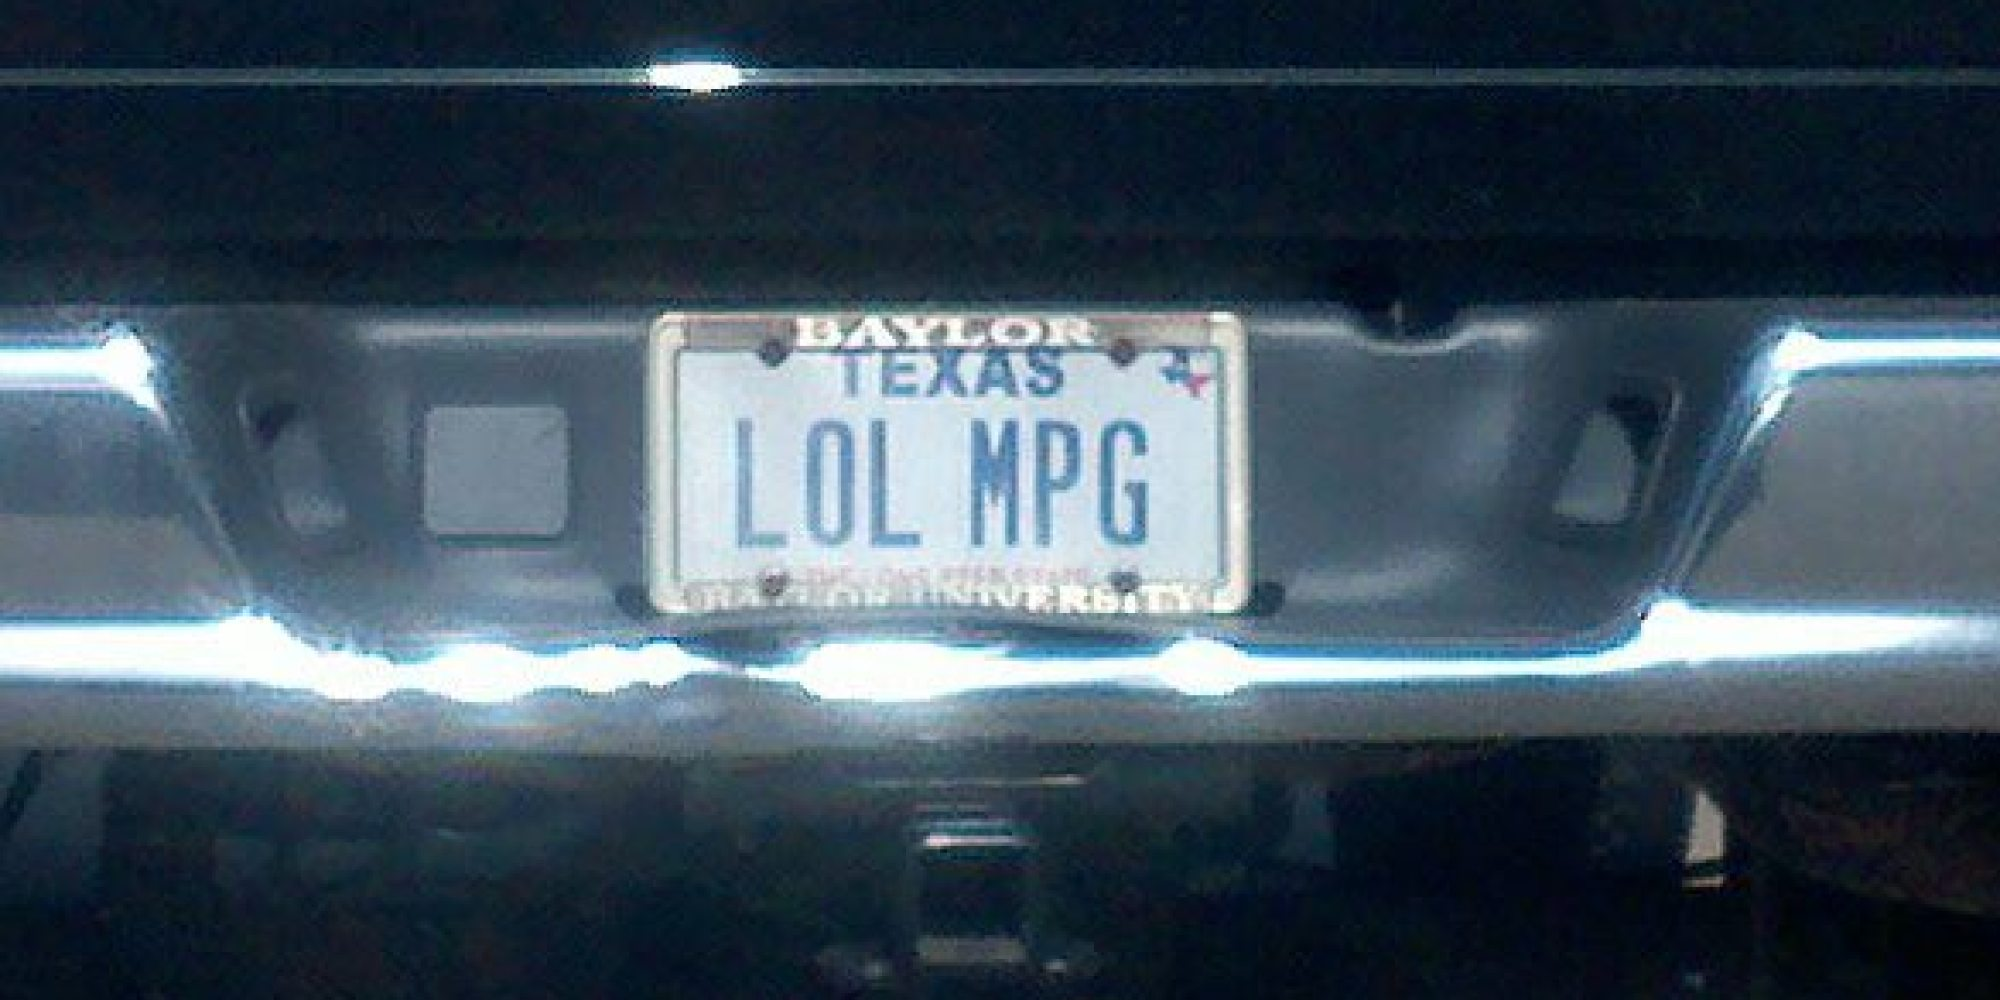 22 Vanity Plates That Will Make You Shake Your Head | HuffPost